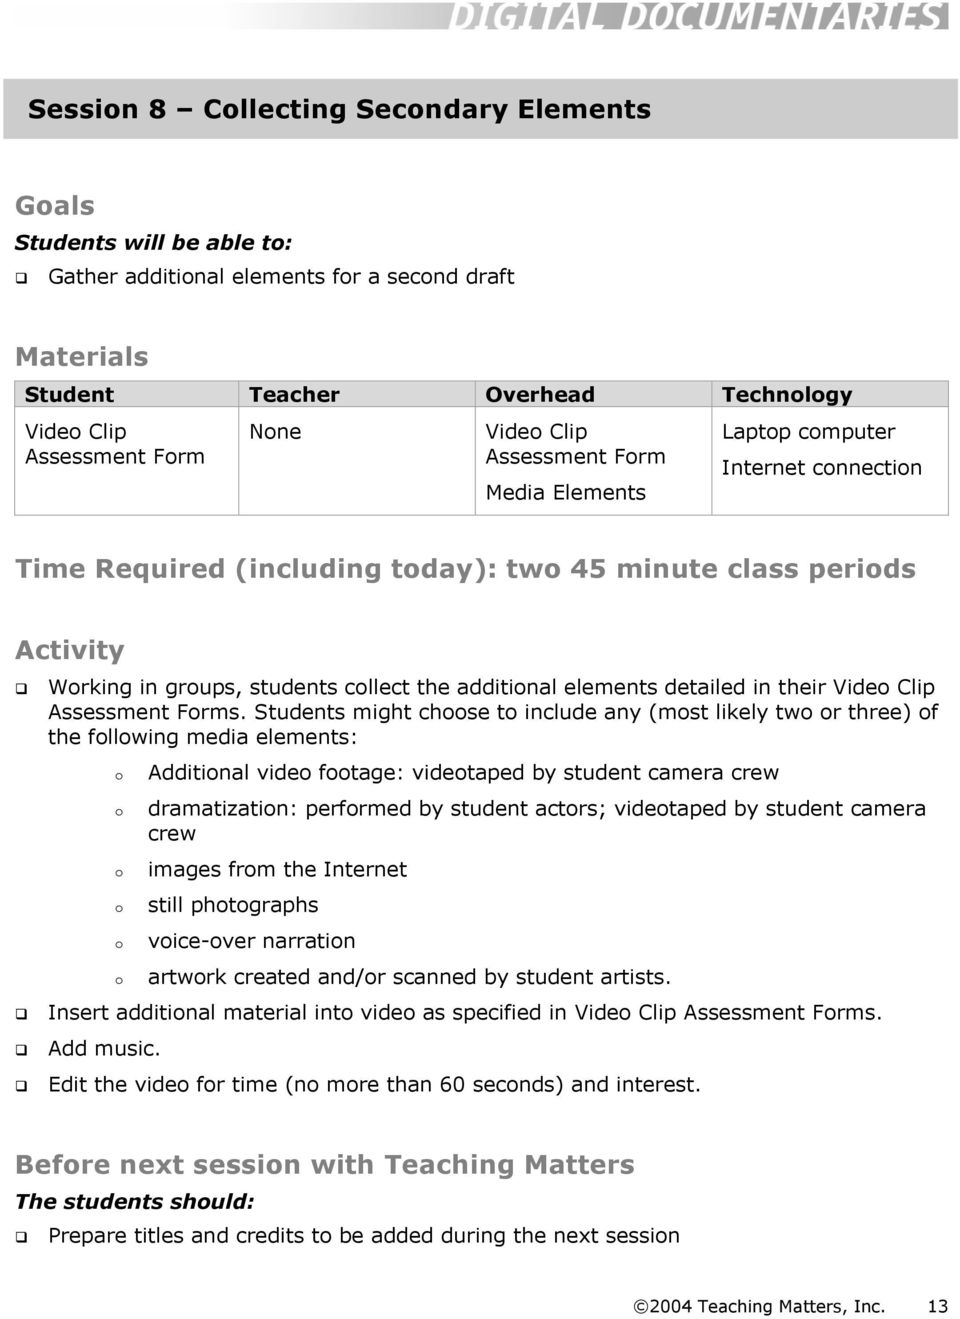 Frms. Students might chse t include any (mst likely tw r three) f the fllwing media elements: Additinal vide ftage: videtaped by student camera crew dramatizatin: perfrmed by student actrs; videtaped